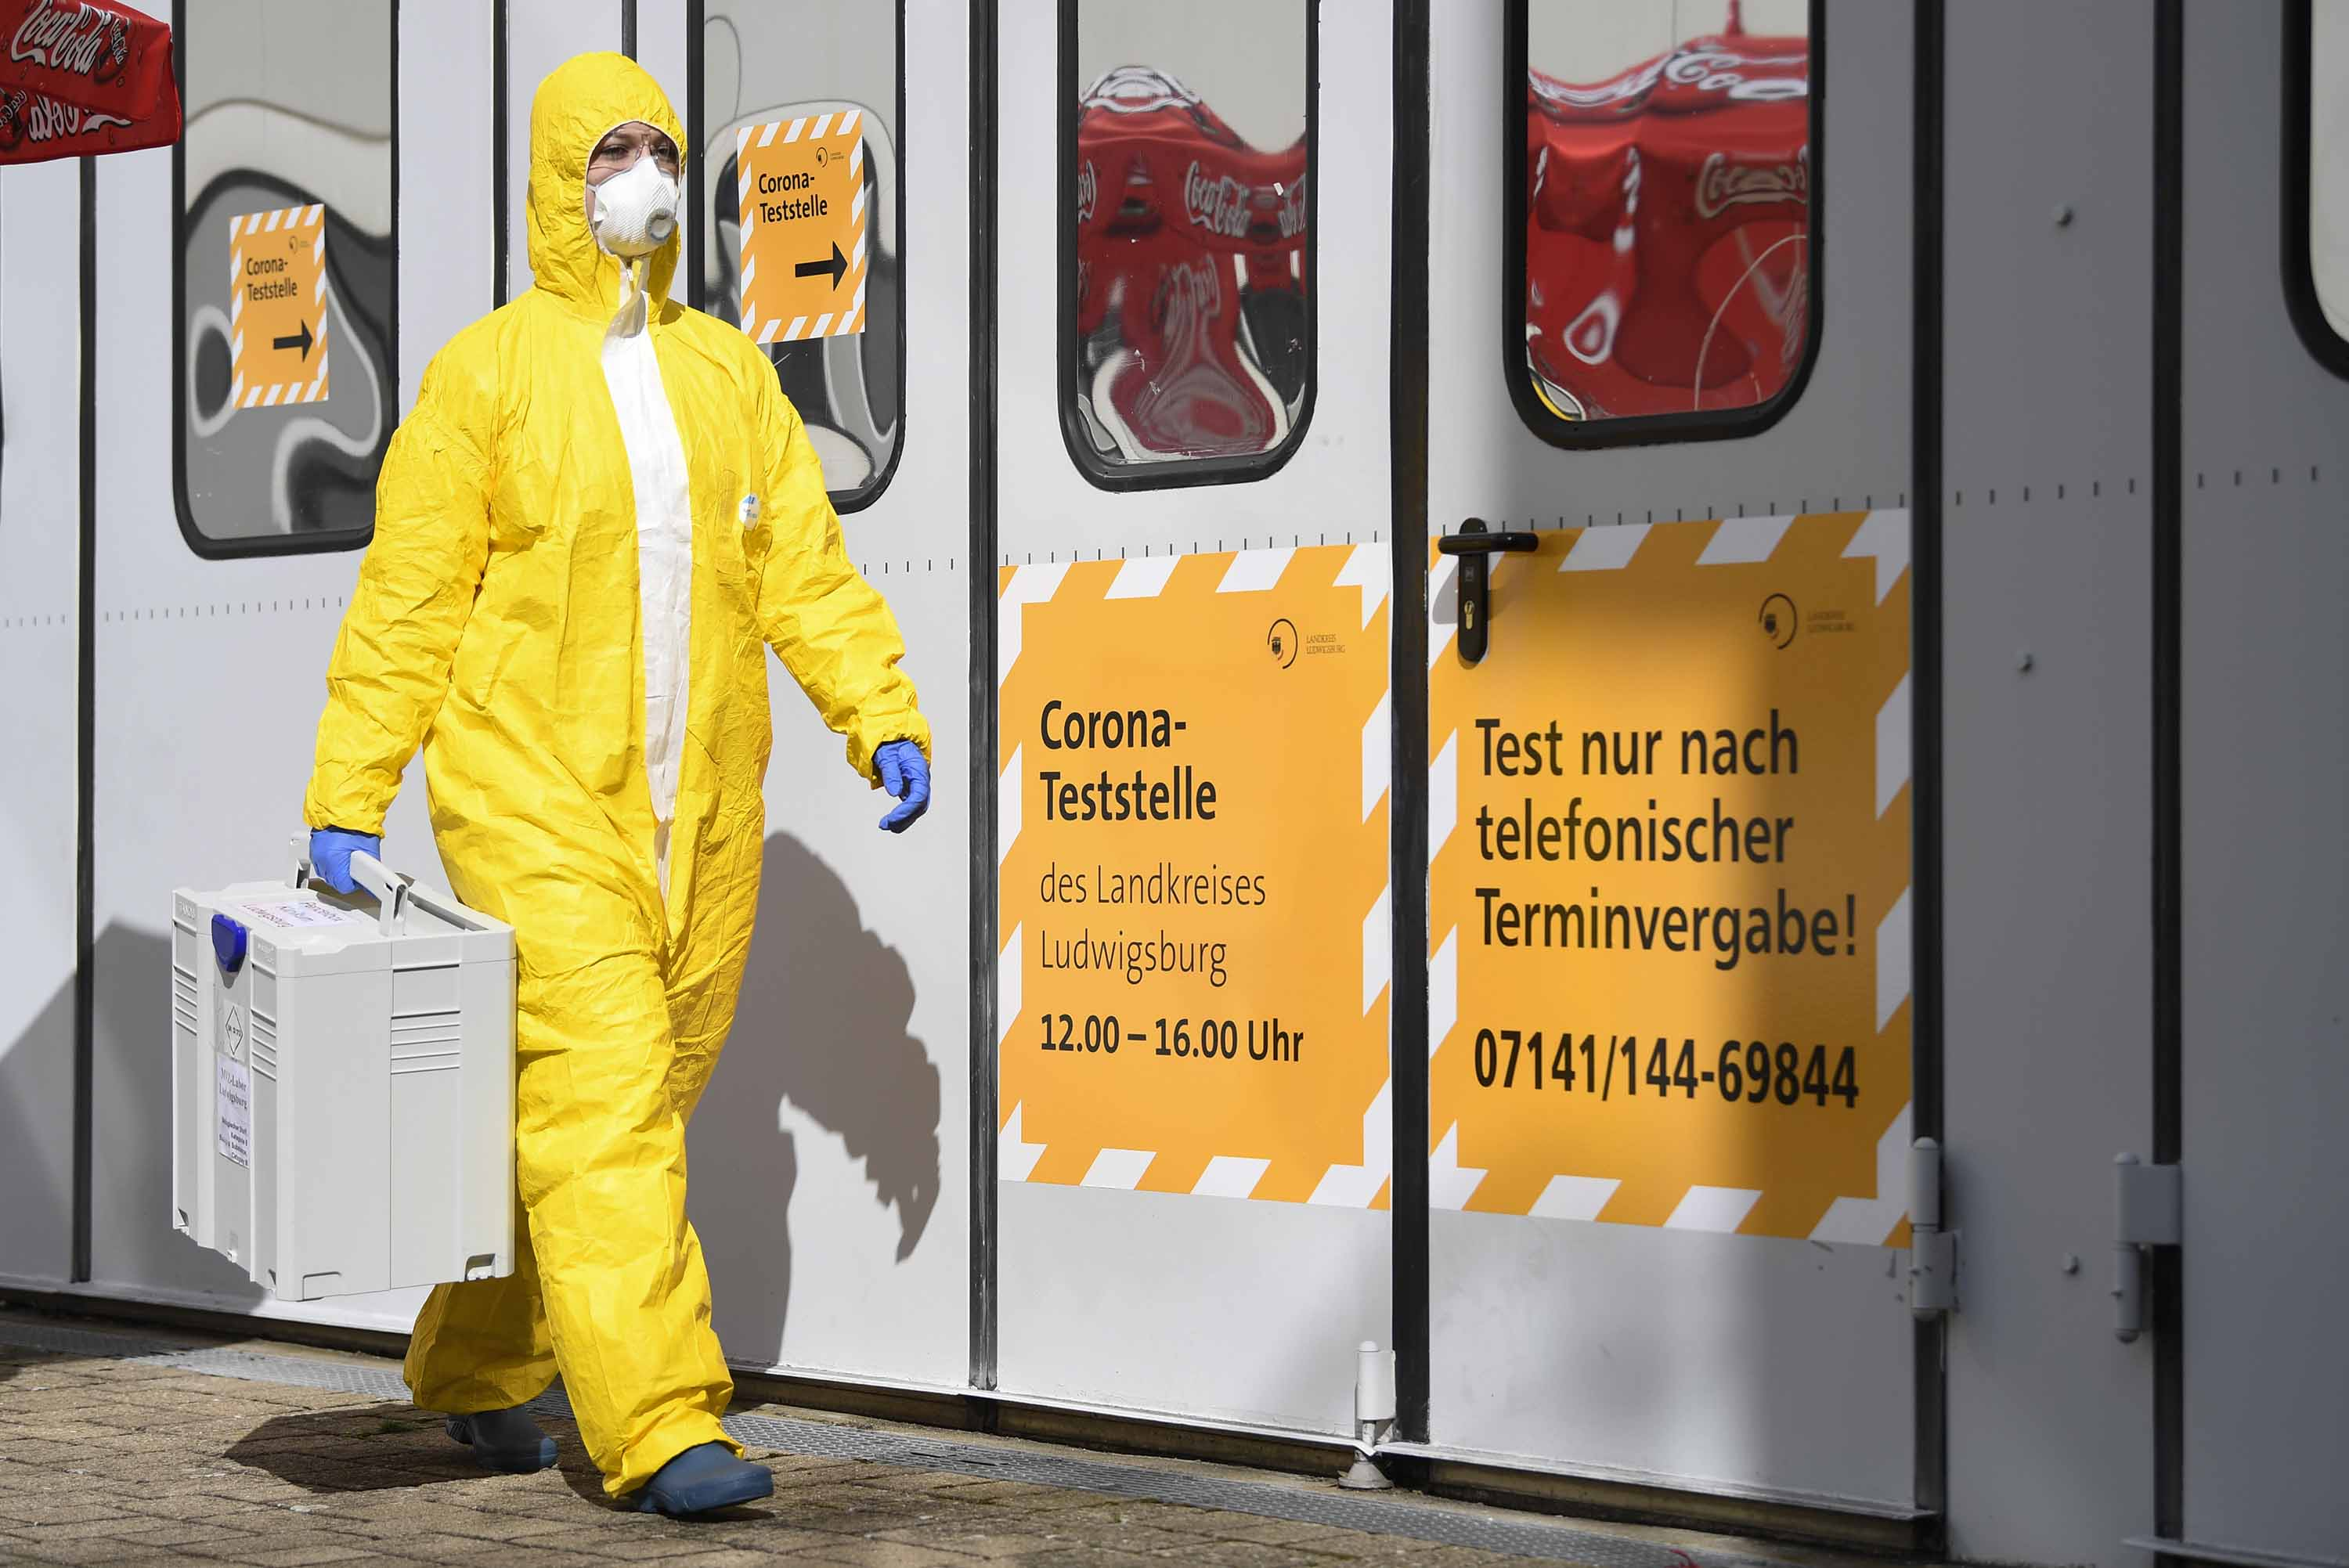 A staff member is seen at a coronavirus test center in Ludwigsburg, Germany, on March 14.